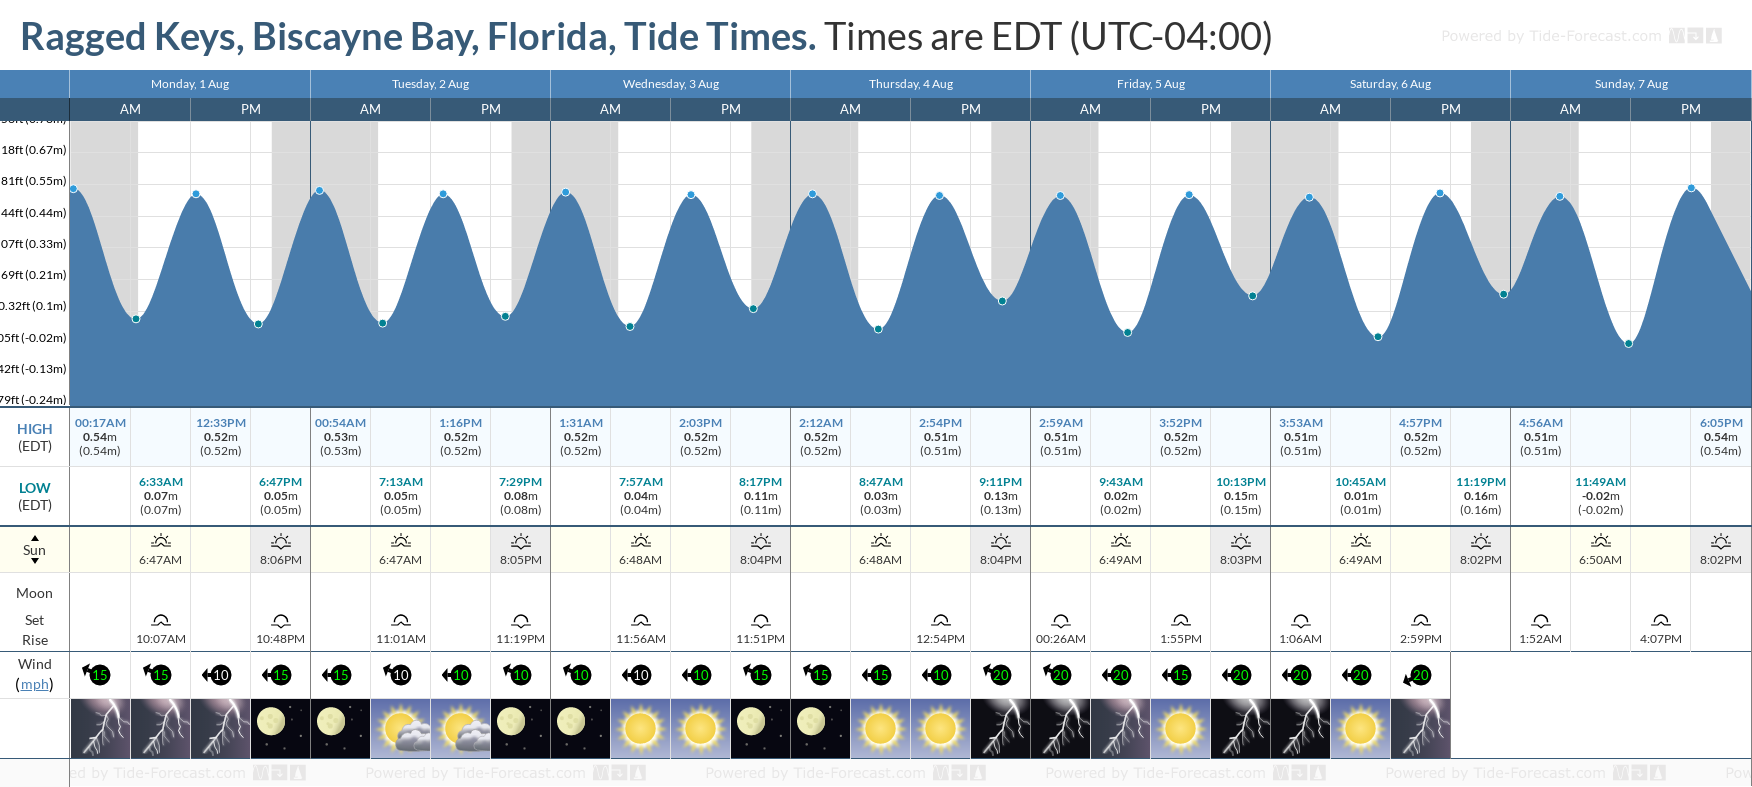 Ragged Keys, Biscayne Bay, Florida Tide Chart including high and low tide tide times for the next 7 days